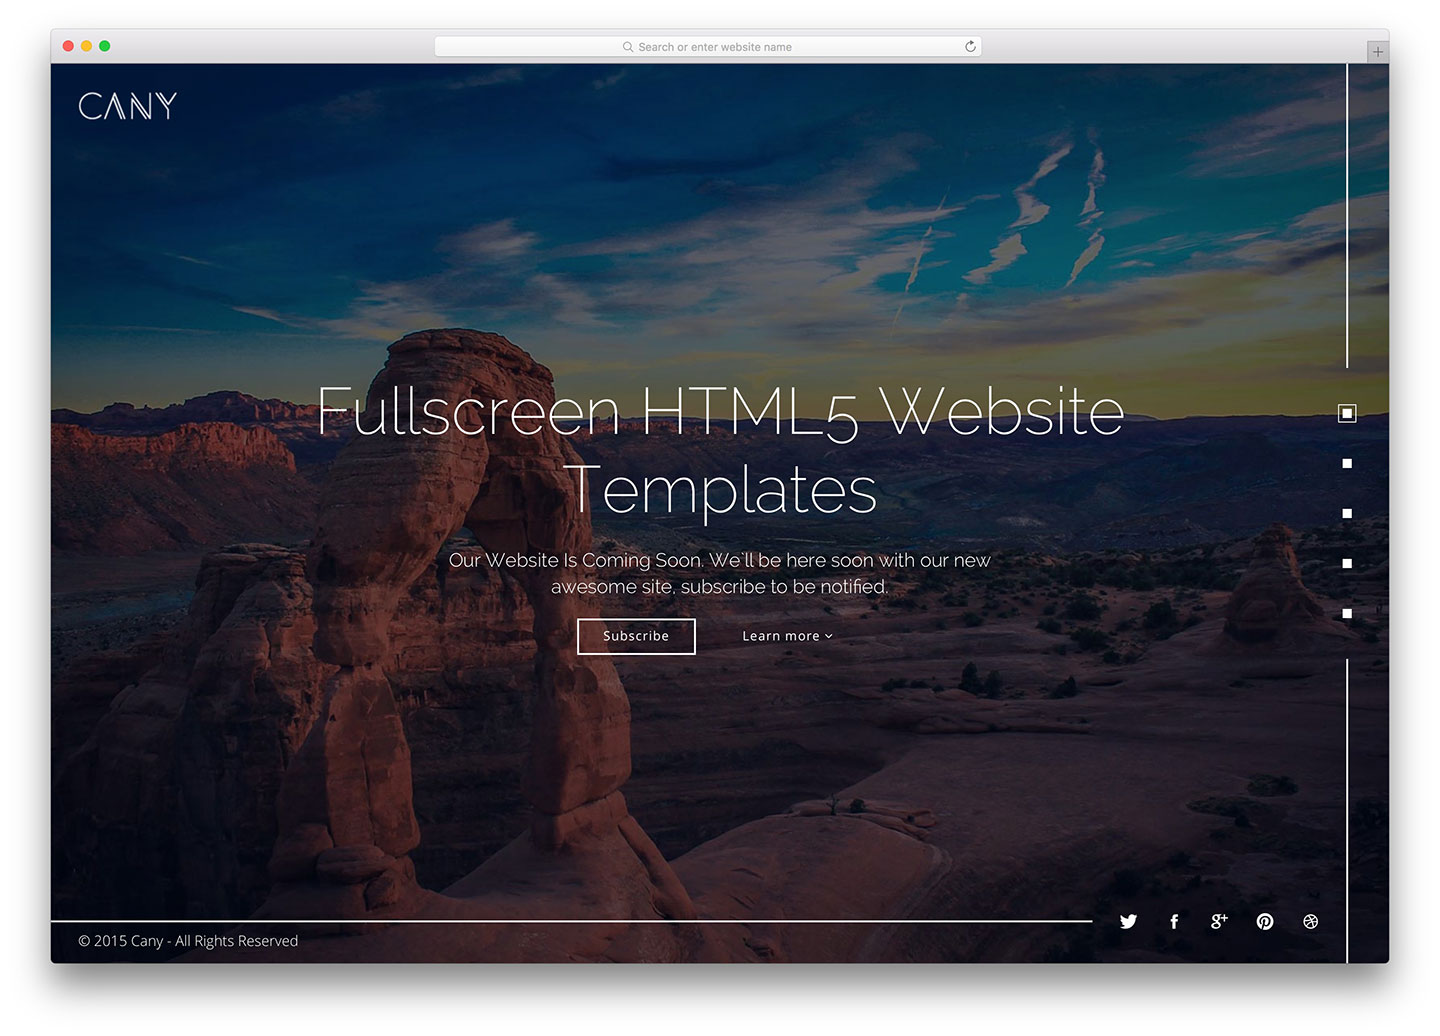 Best Responsive Fullscreen HTML5/CSS3 Website Templates To Build A Mobile Friendly And Professional Website 2018